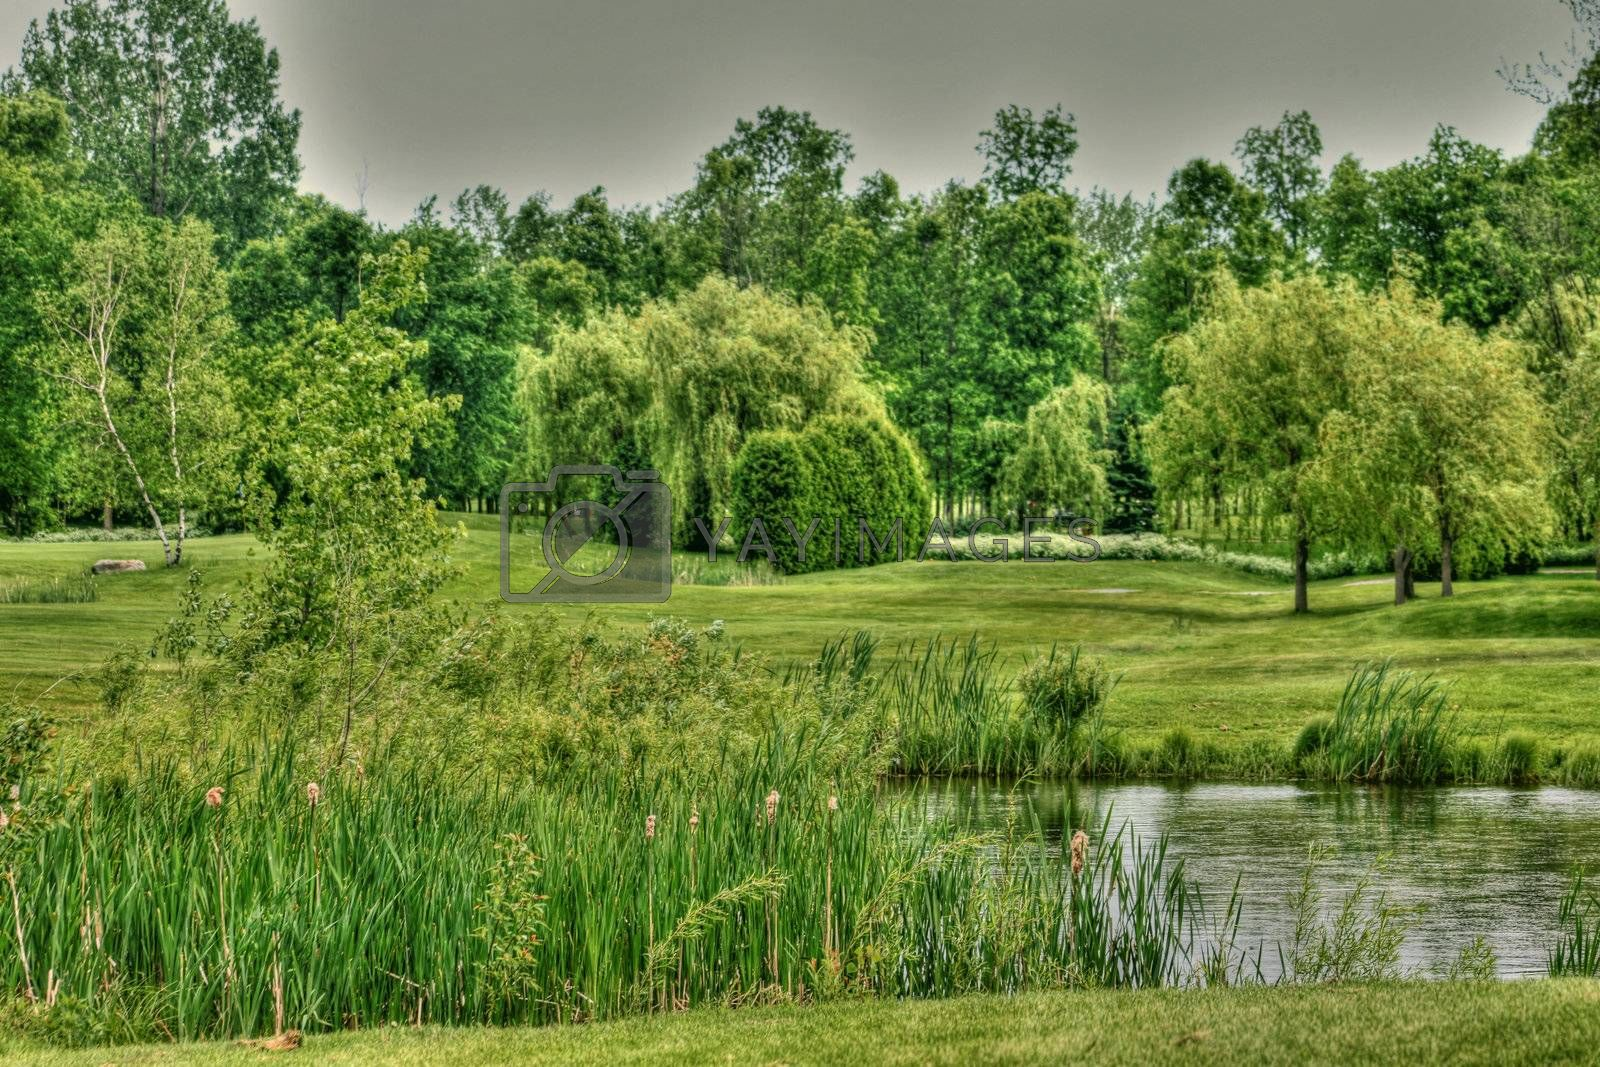 Golf green and water hazard with trees and greenery